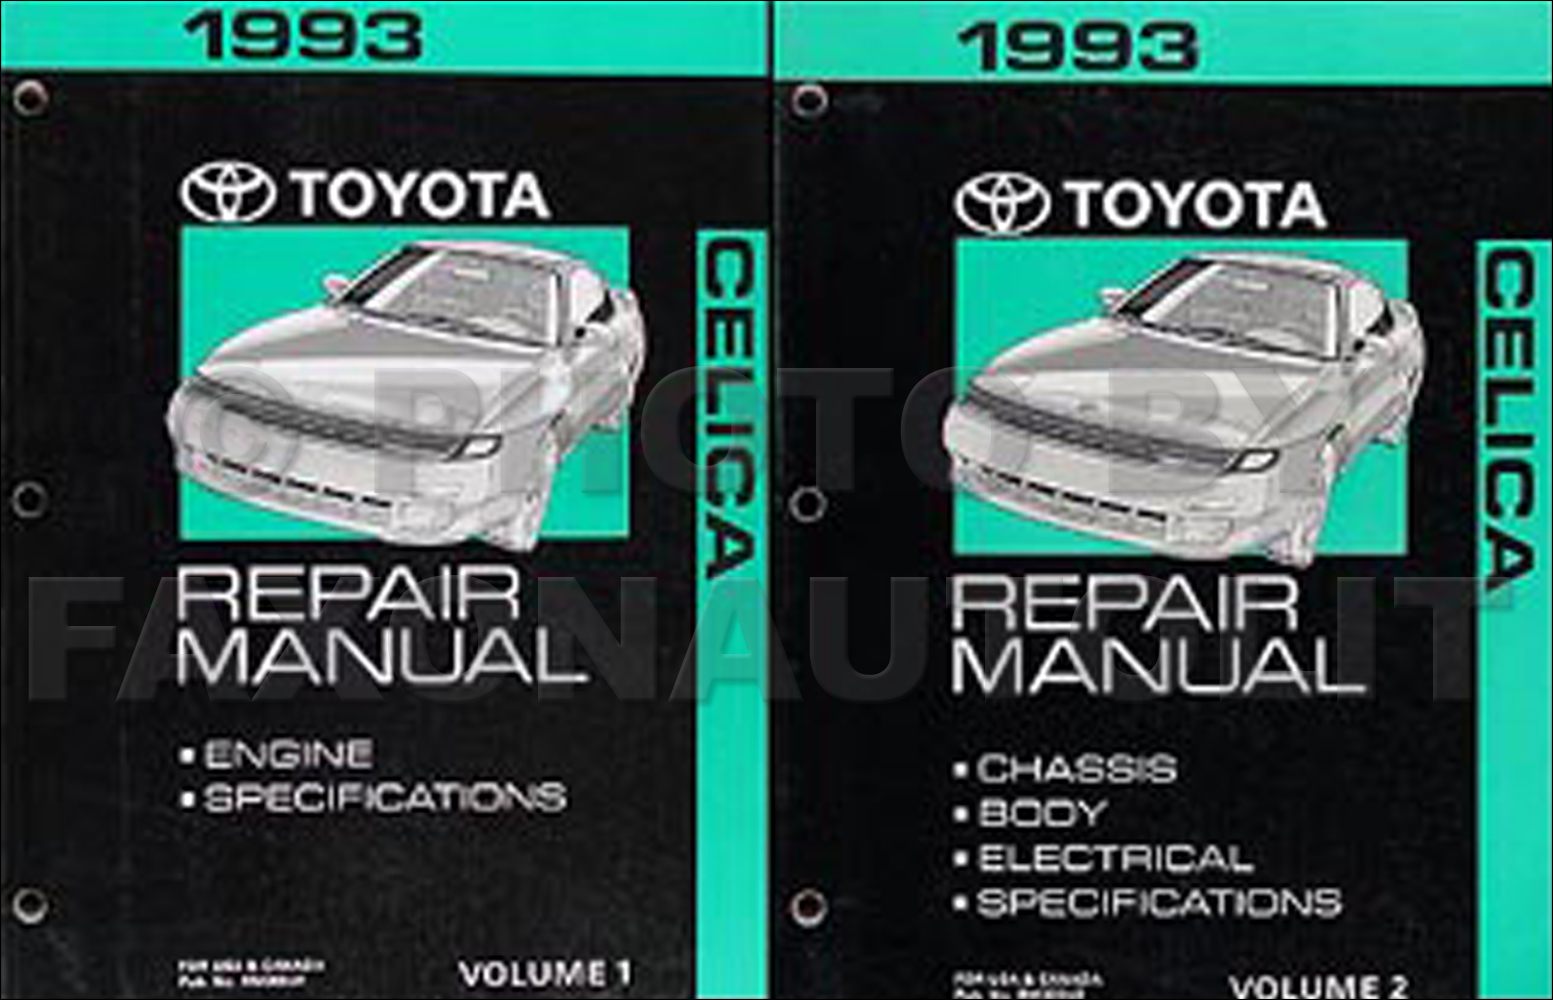 1993 Toyota Celica Repair Manual Original 2 Volume Set